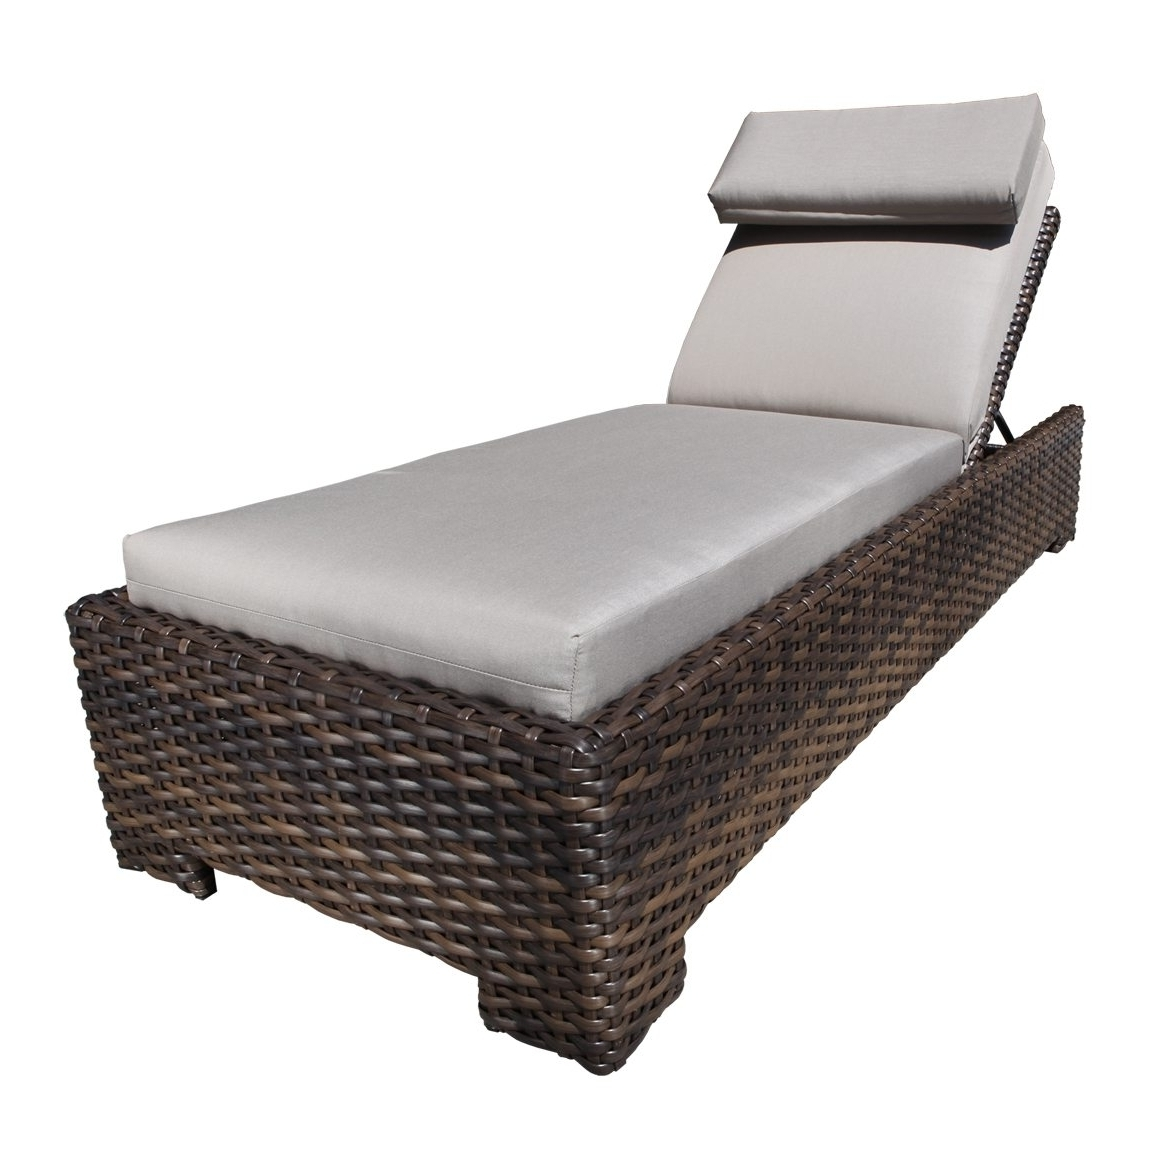 Outdoor Pool Chaise Lounge Chairs Within Most Up To Date Gorgeous Patio Chaise Lounge Chair Lounge Outdoor 16 Exterior (View 13 of 15)